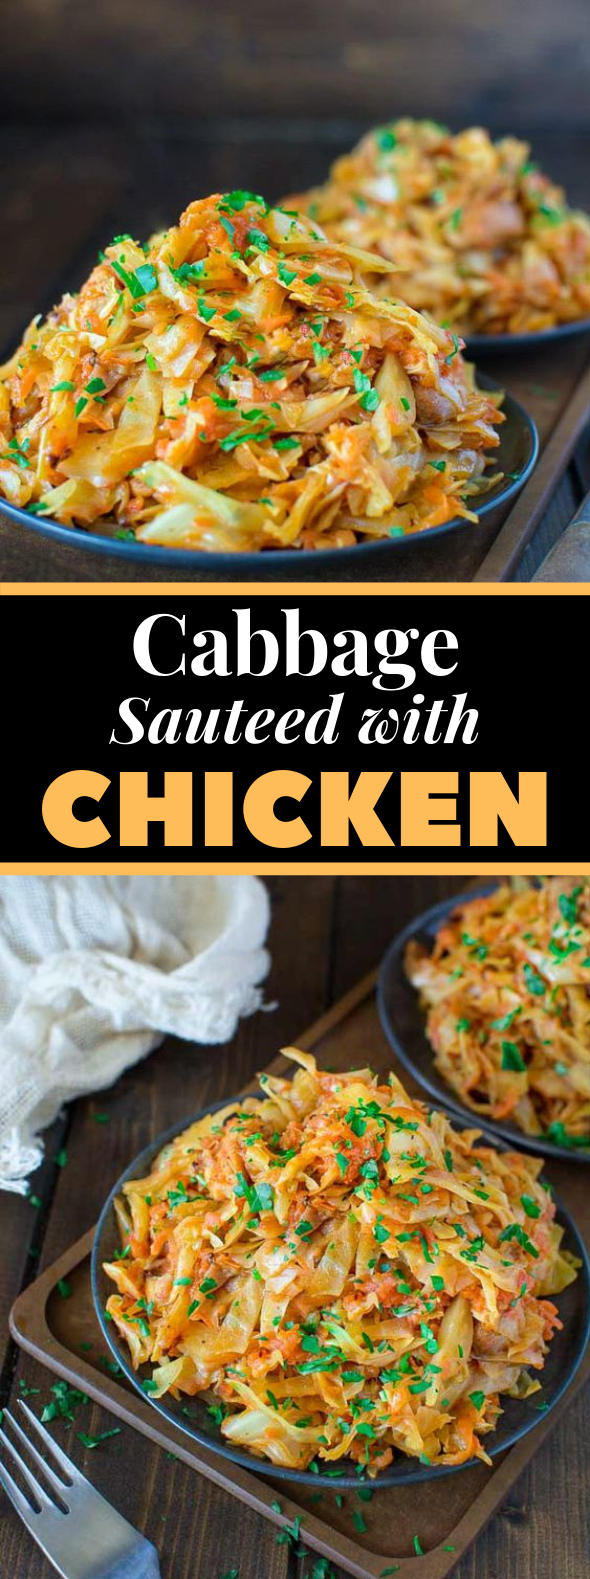 Cabbage Sauteed with Chicken #vegetable #bestrecipe